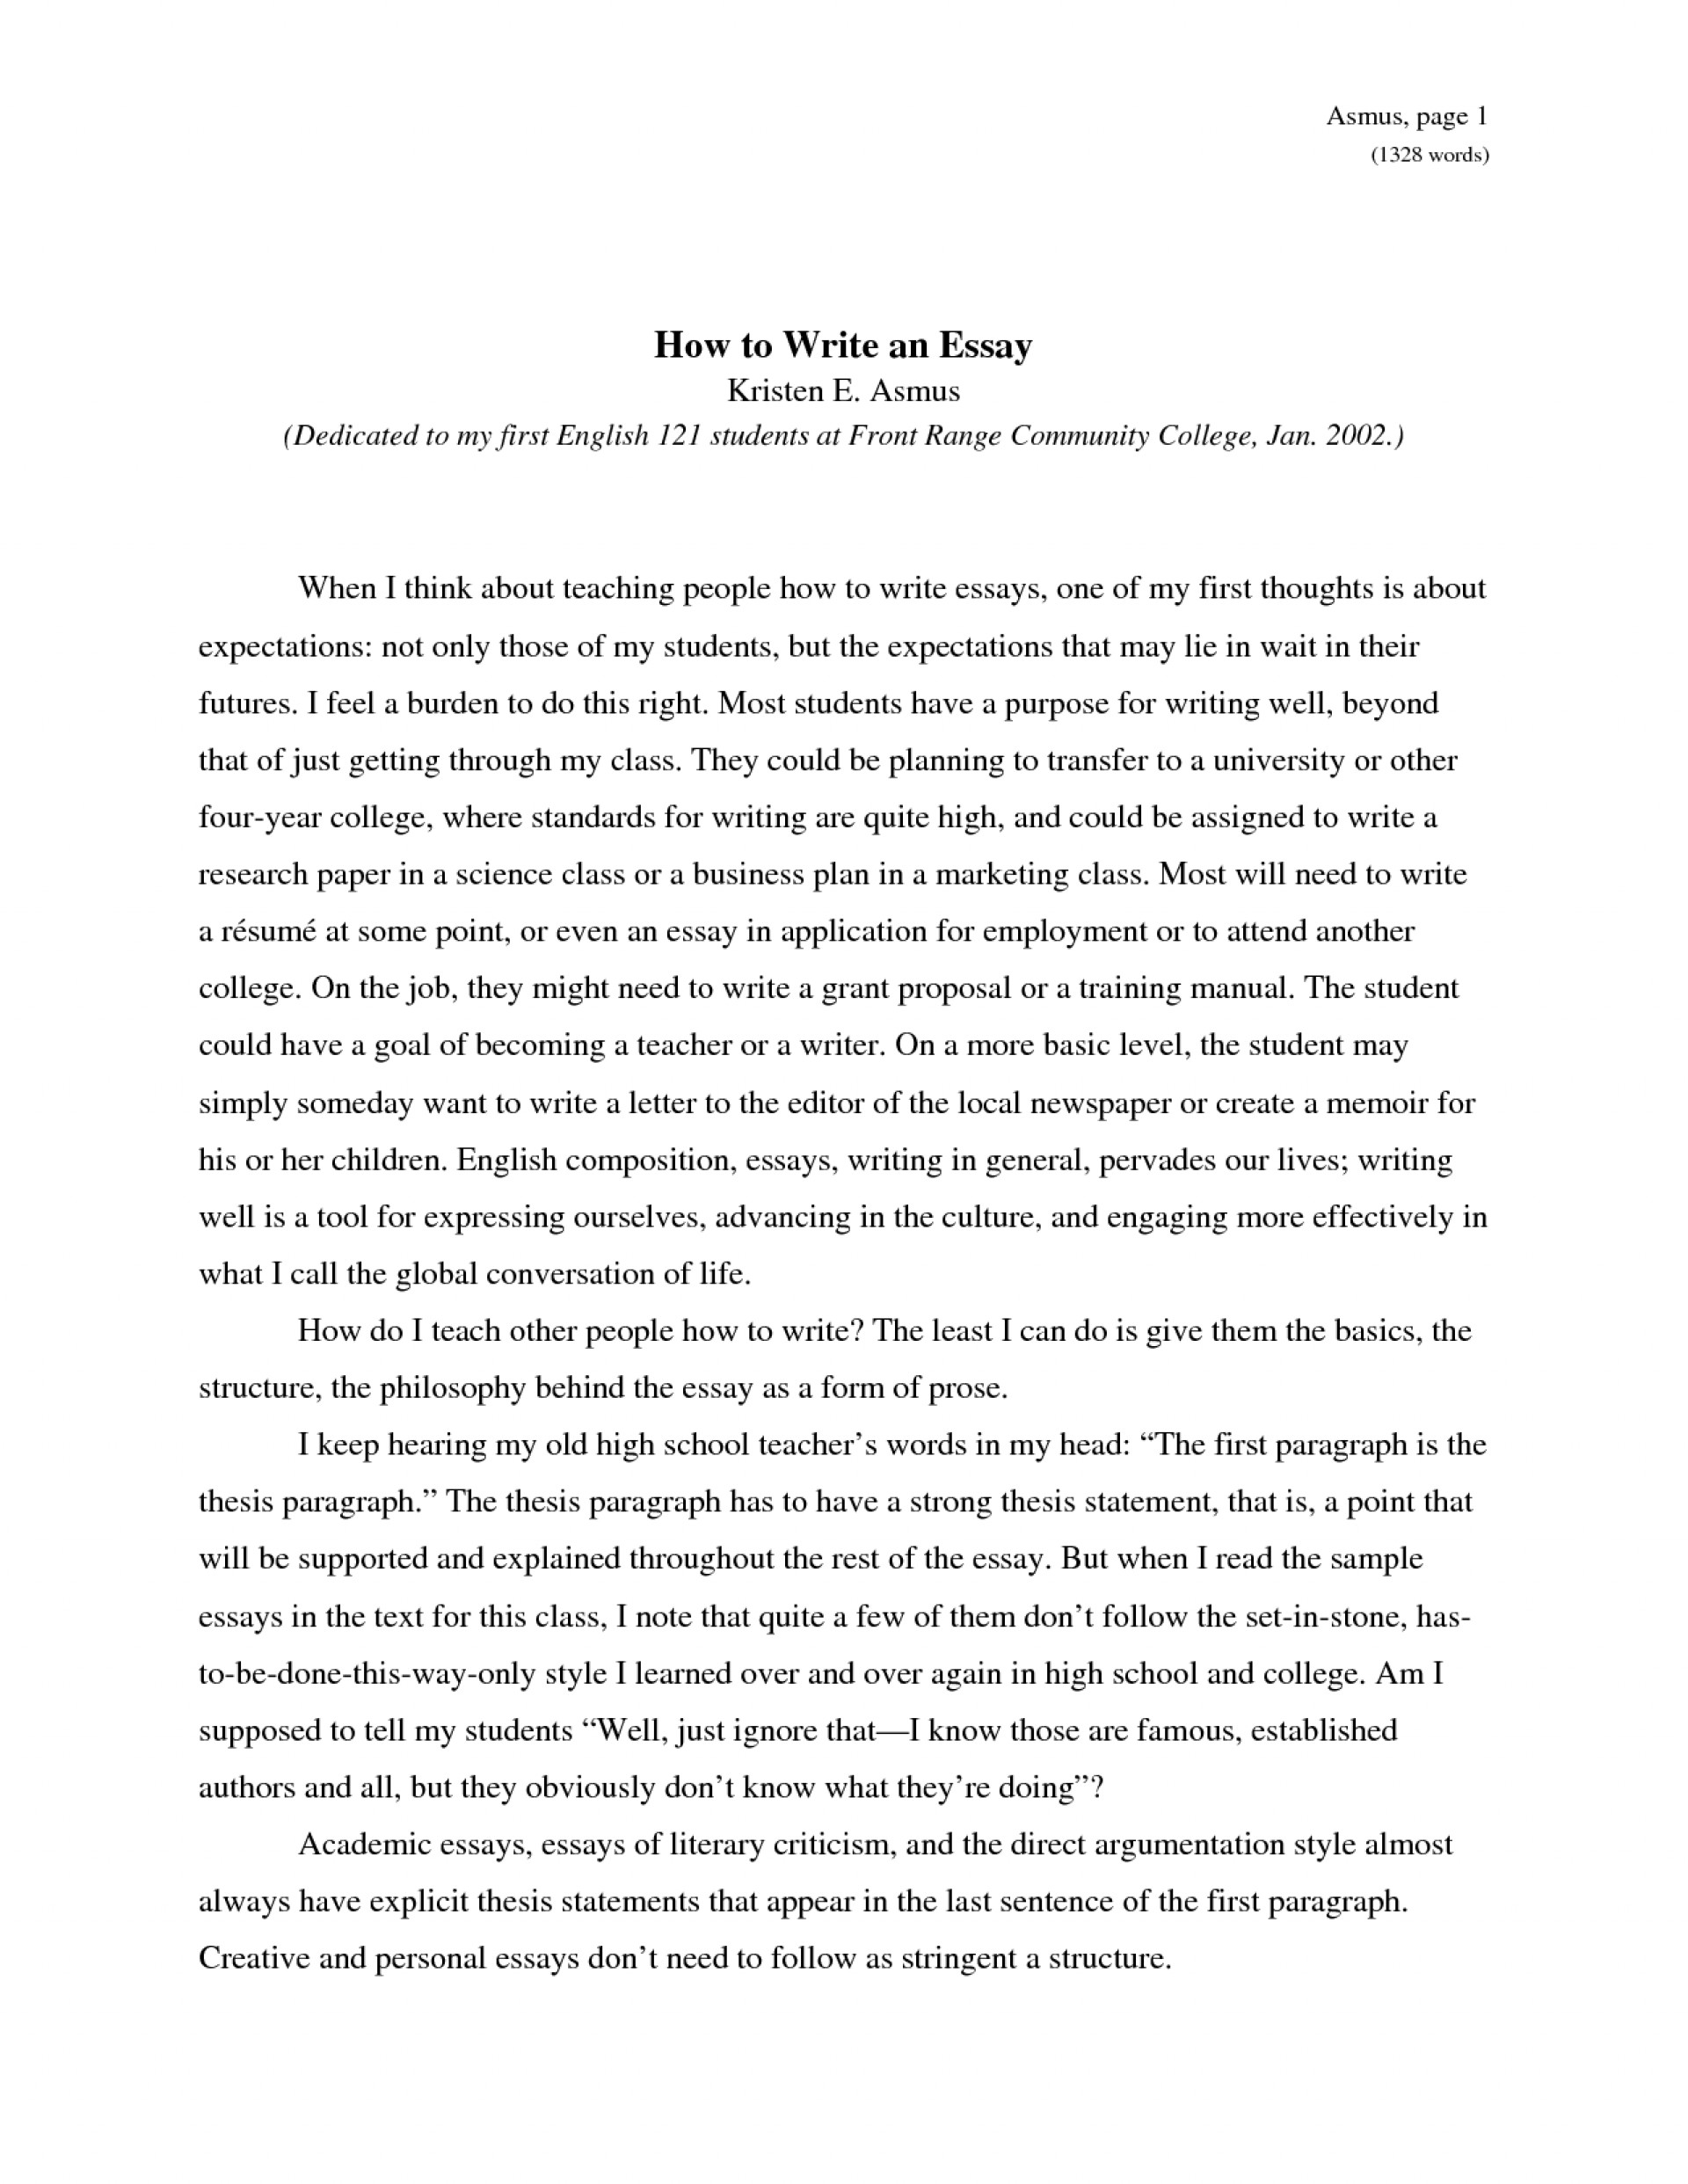 009 W8zti9kc8d Essay Example How To Type Awesome An Fast A One Page Paper In Apa Format Mla On Mac 1920